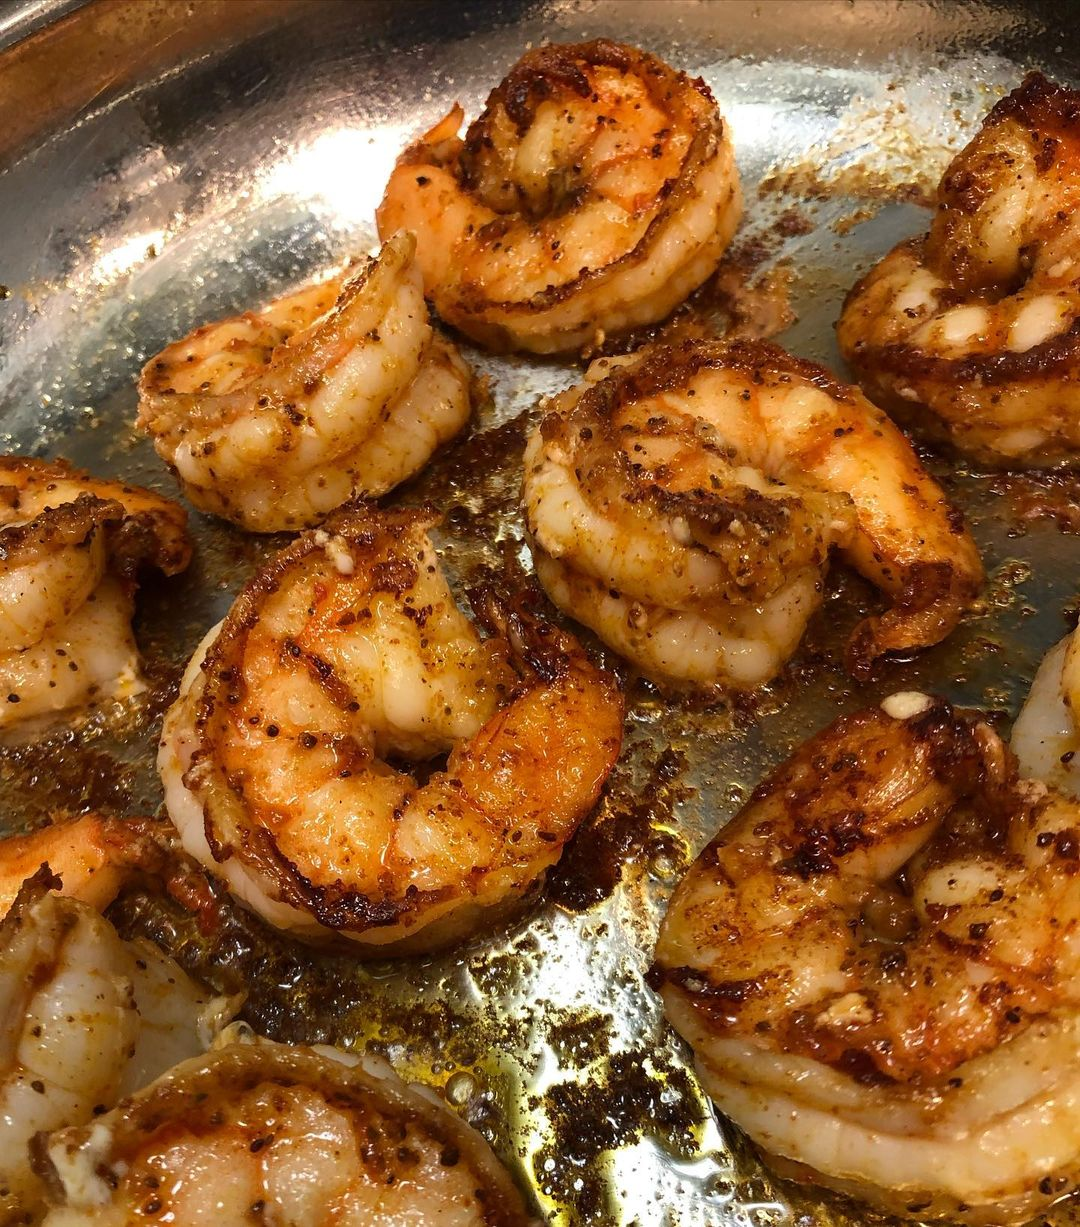 LBI Spicy pan fried shrimp and homemade creamed spinach on this chilly December nigh…